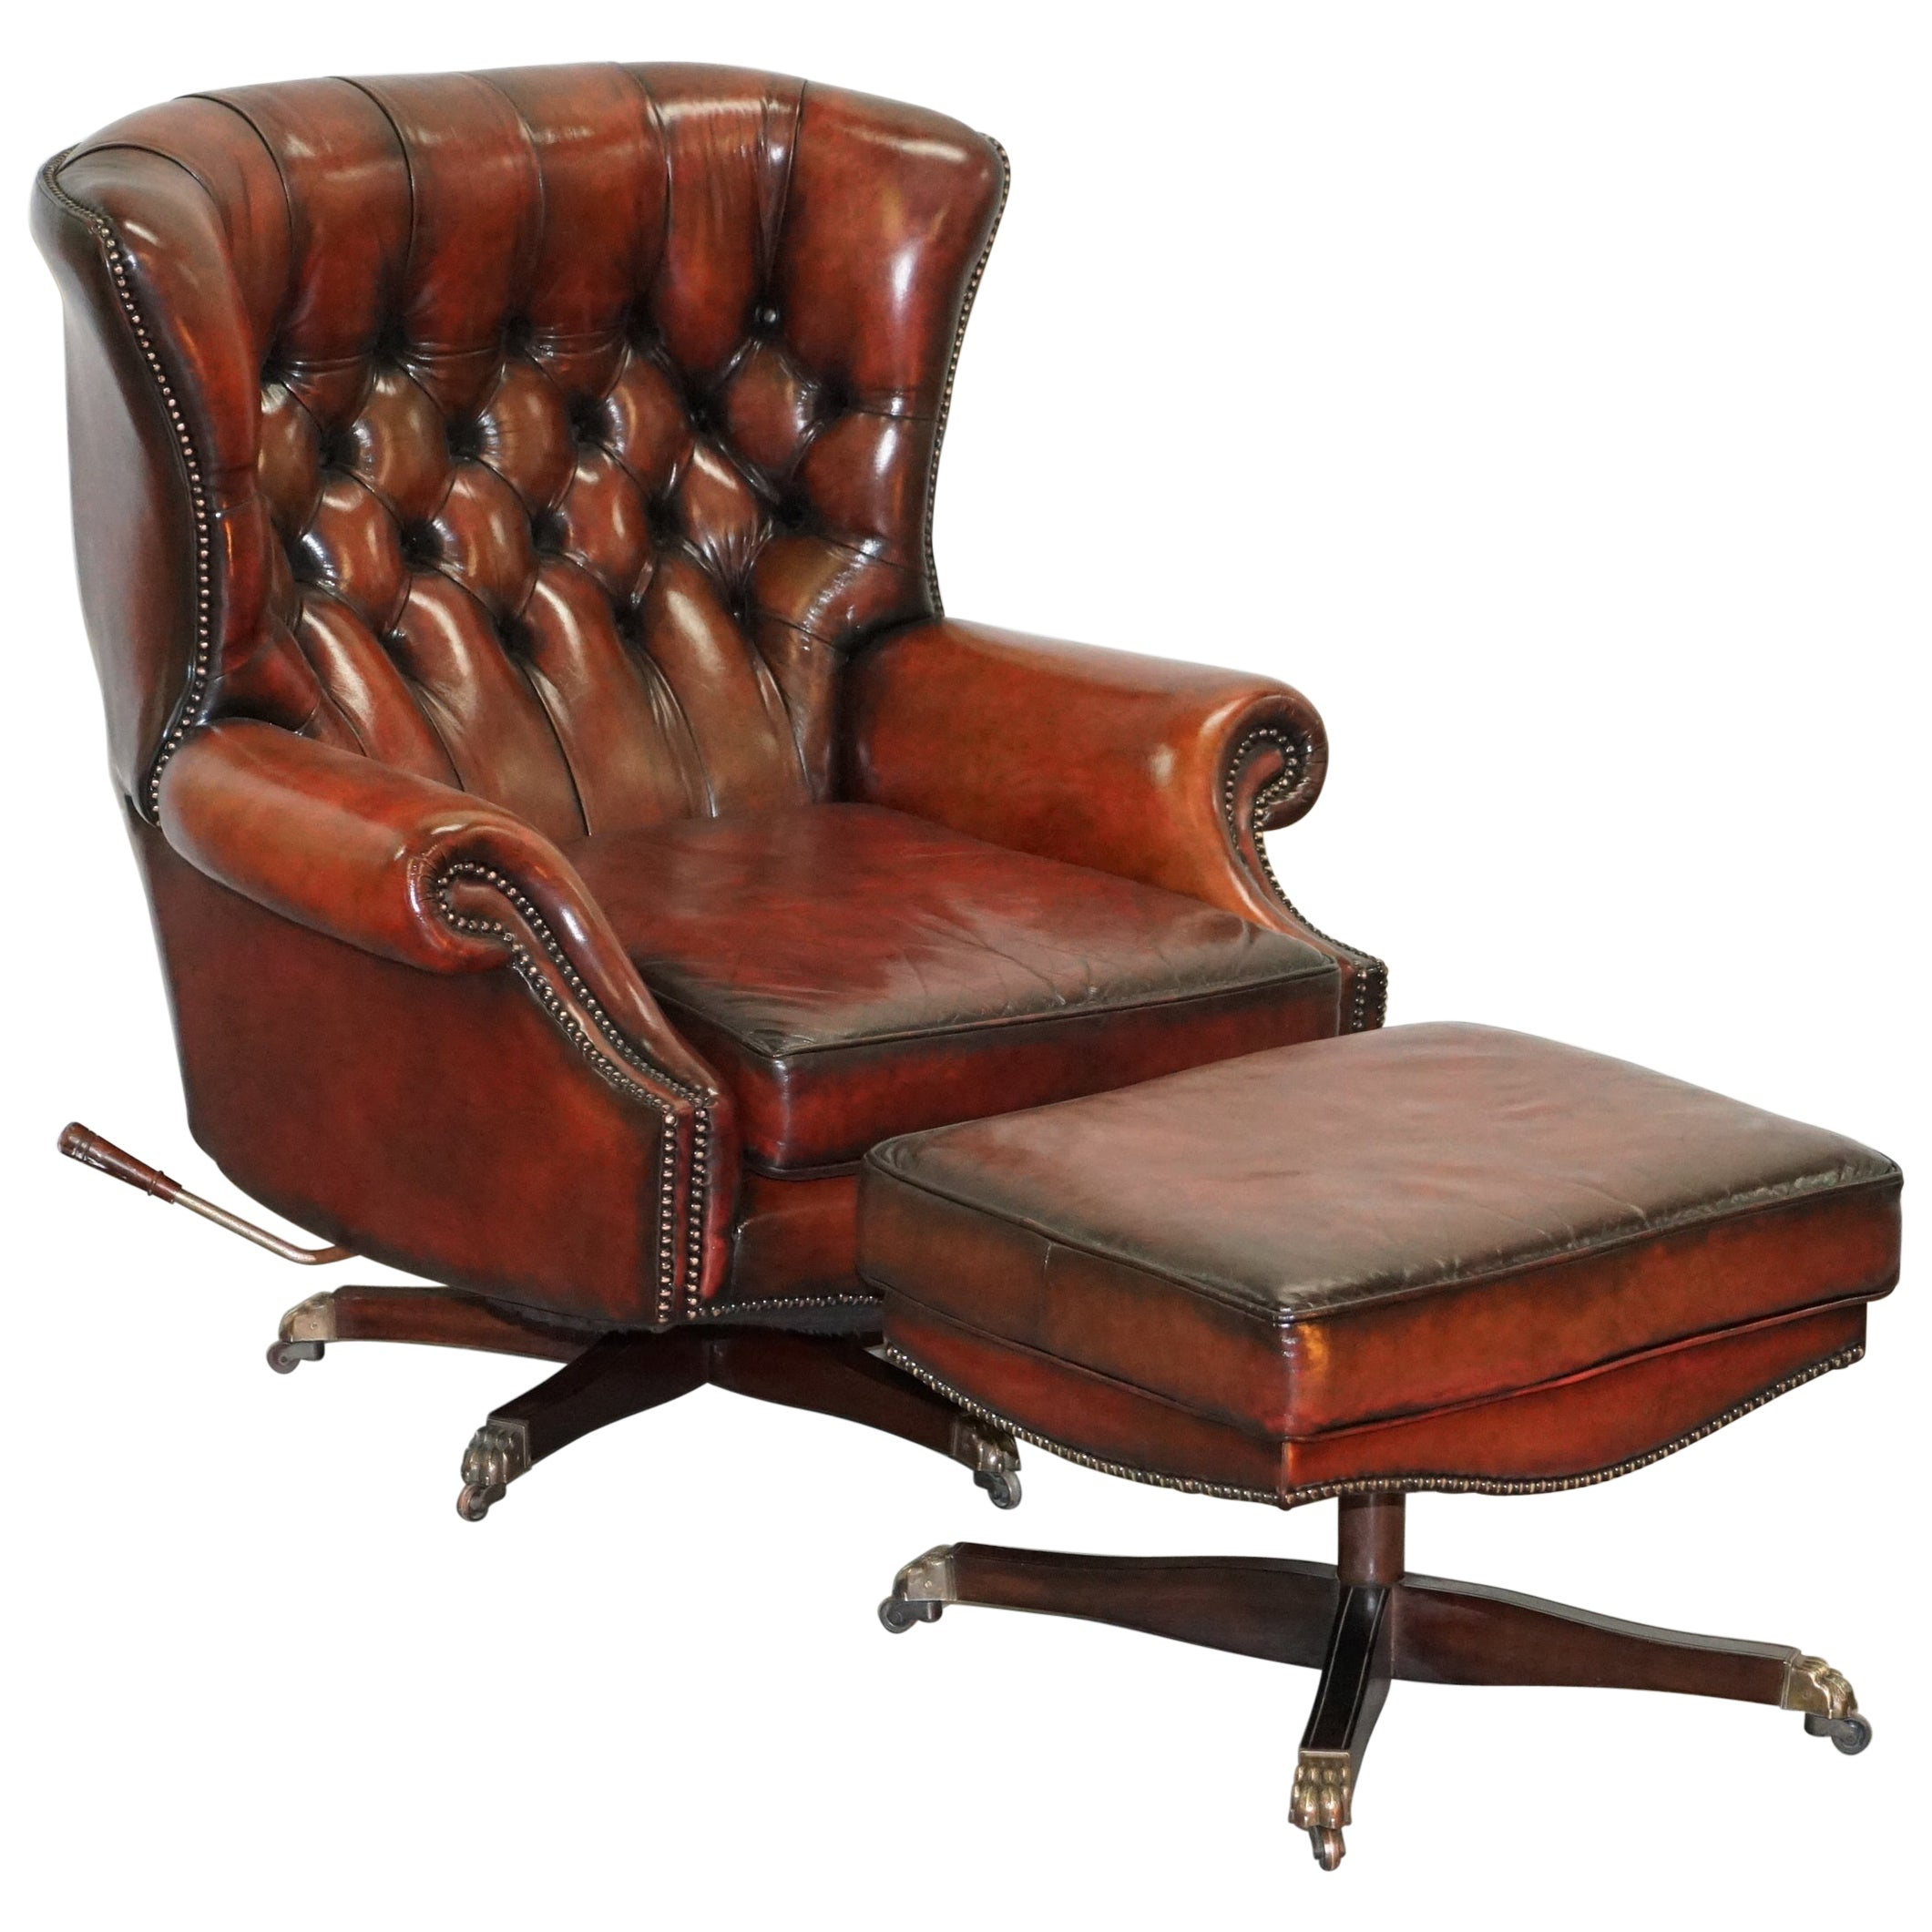 Restored Harrods London Brown Leather Chesterfield Swivel Armchair & Footstool